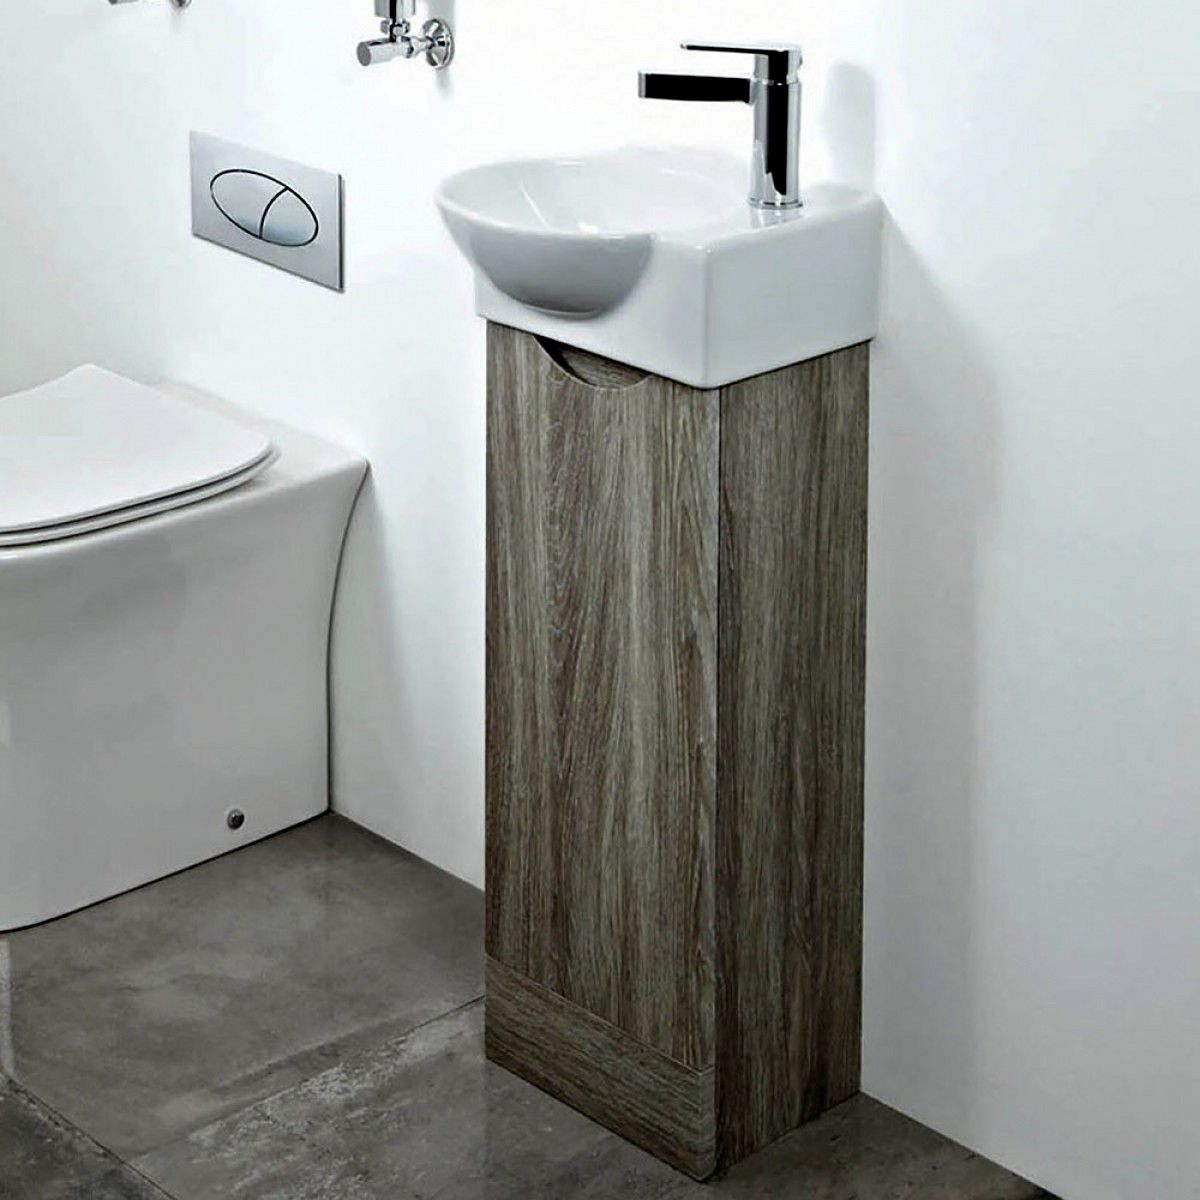 phoenix georgia cloakroom vanity unit with basin HXPNLGD